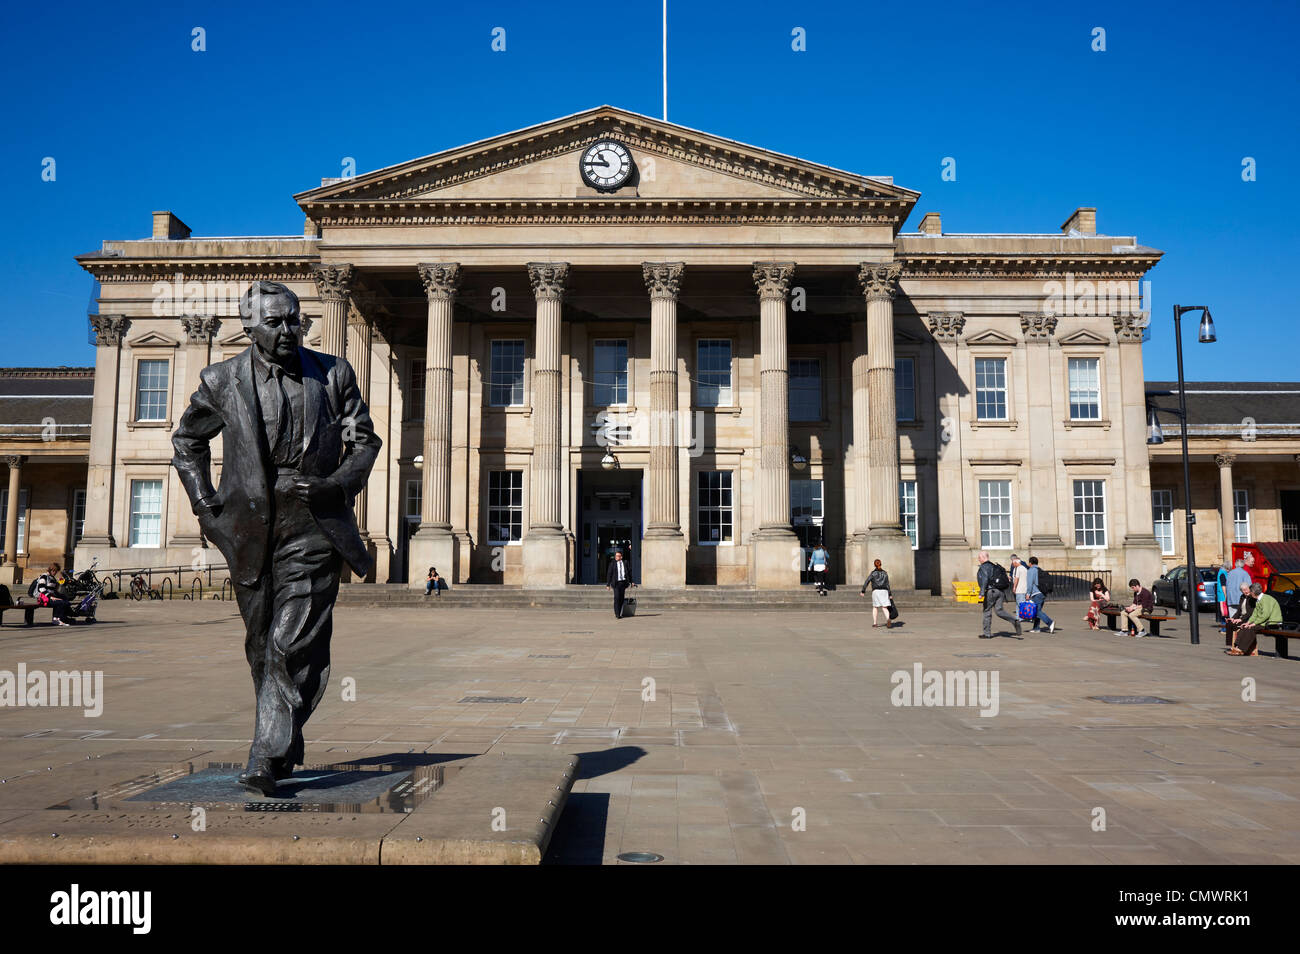 A bronze statue of the former Prime Minister, Harold Wilson in front of the Railway Station, Huddersfield town centre - Stock Image